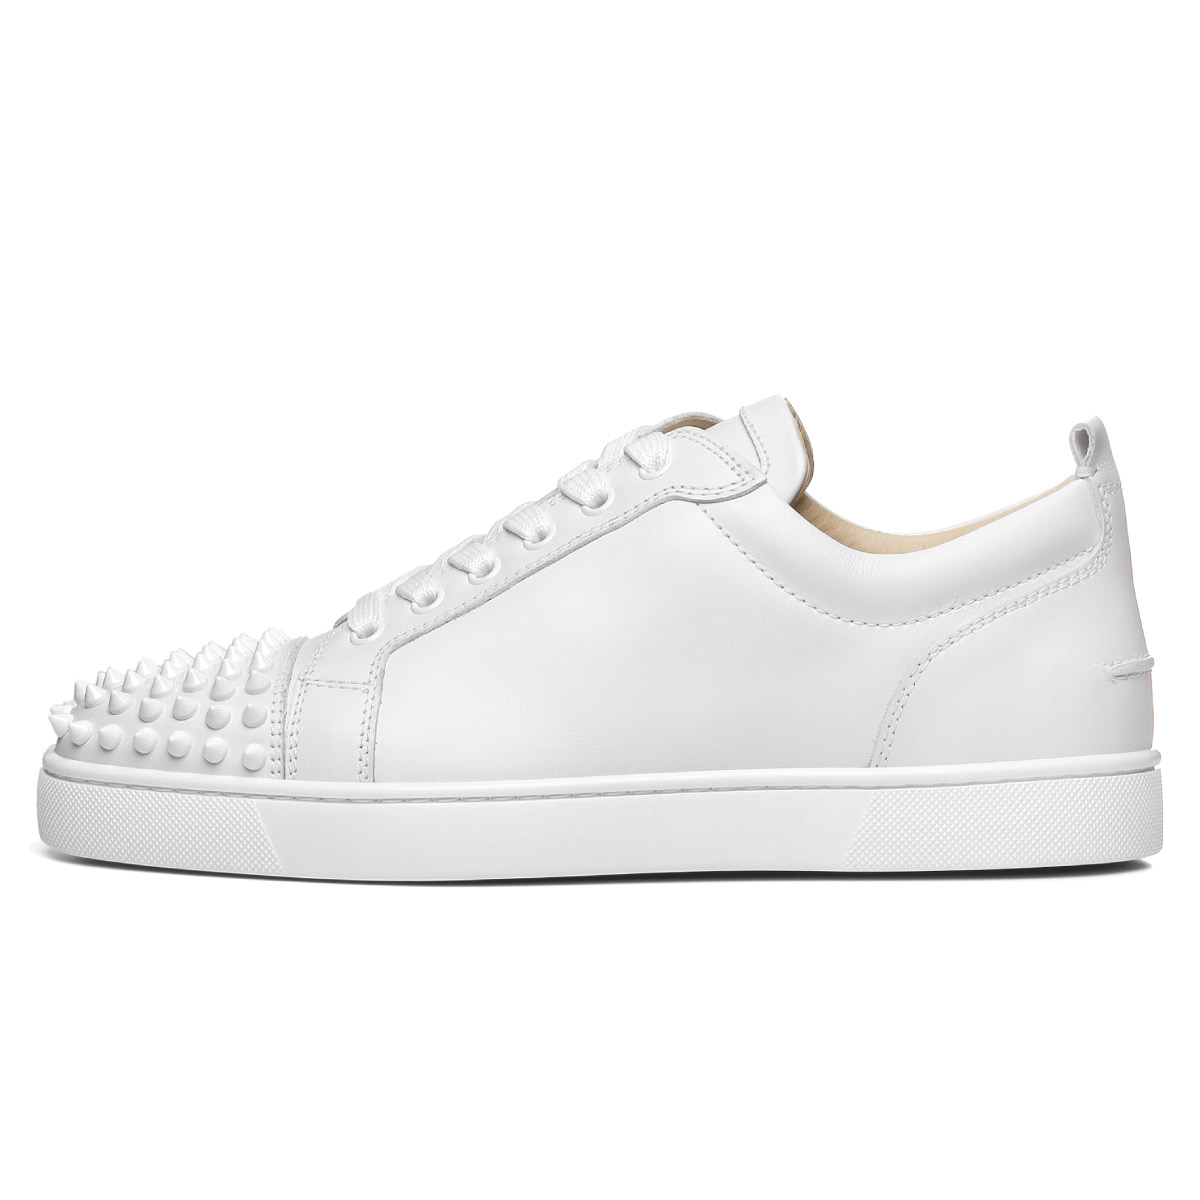 best website 4835f 4bb97 1130573 クリスチャンルブタン Christian Louboutin shoes men 3047 sneakers LOUIS JUNIOR  SPIKES FLAT Lewis Junius pike staple fiber rat WHITE/WHITE white